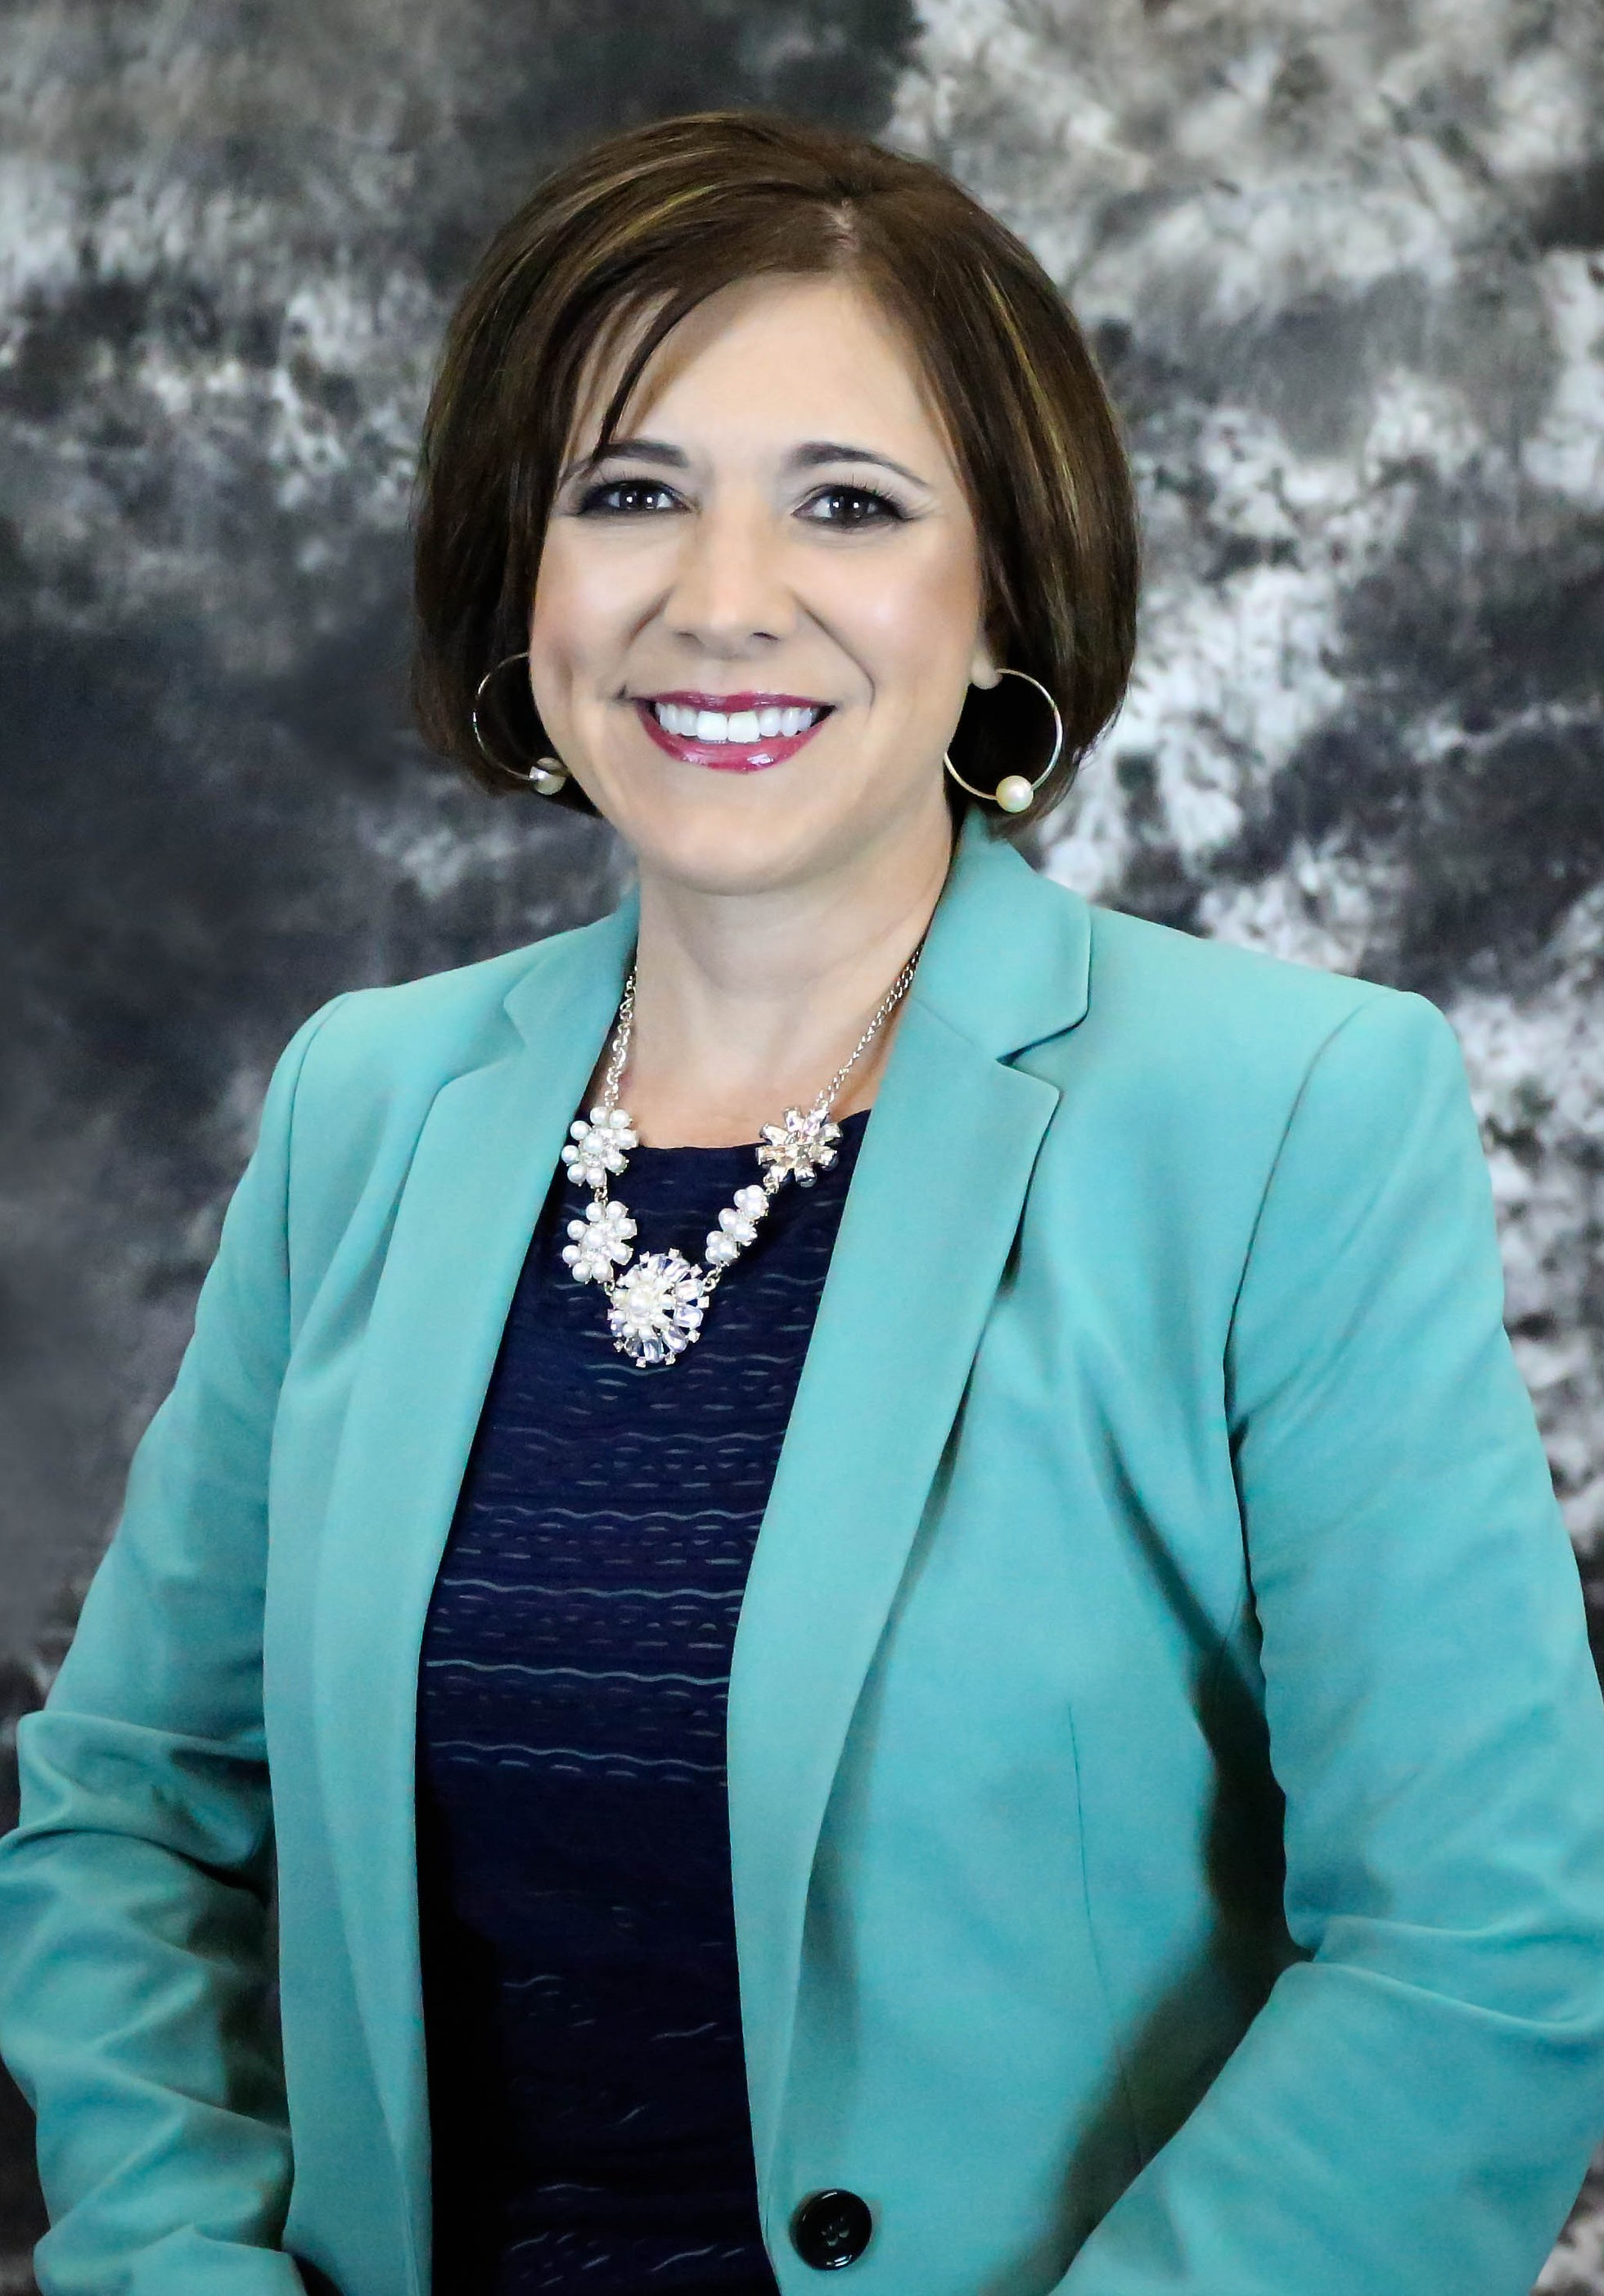 Diane Perez, Superintendent of San Jacinto Unified School District